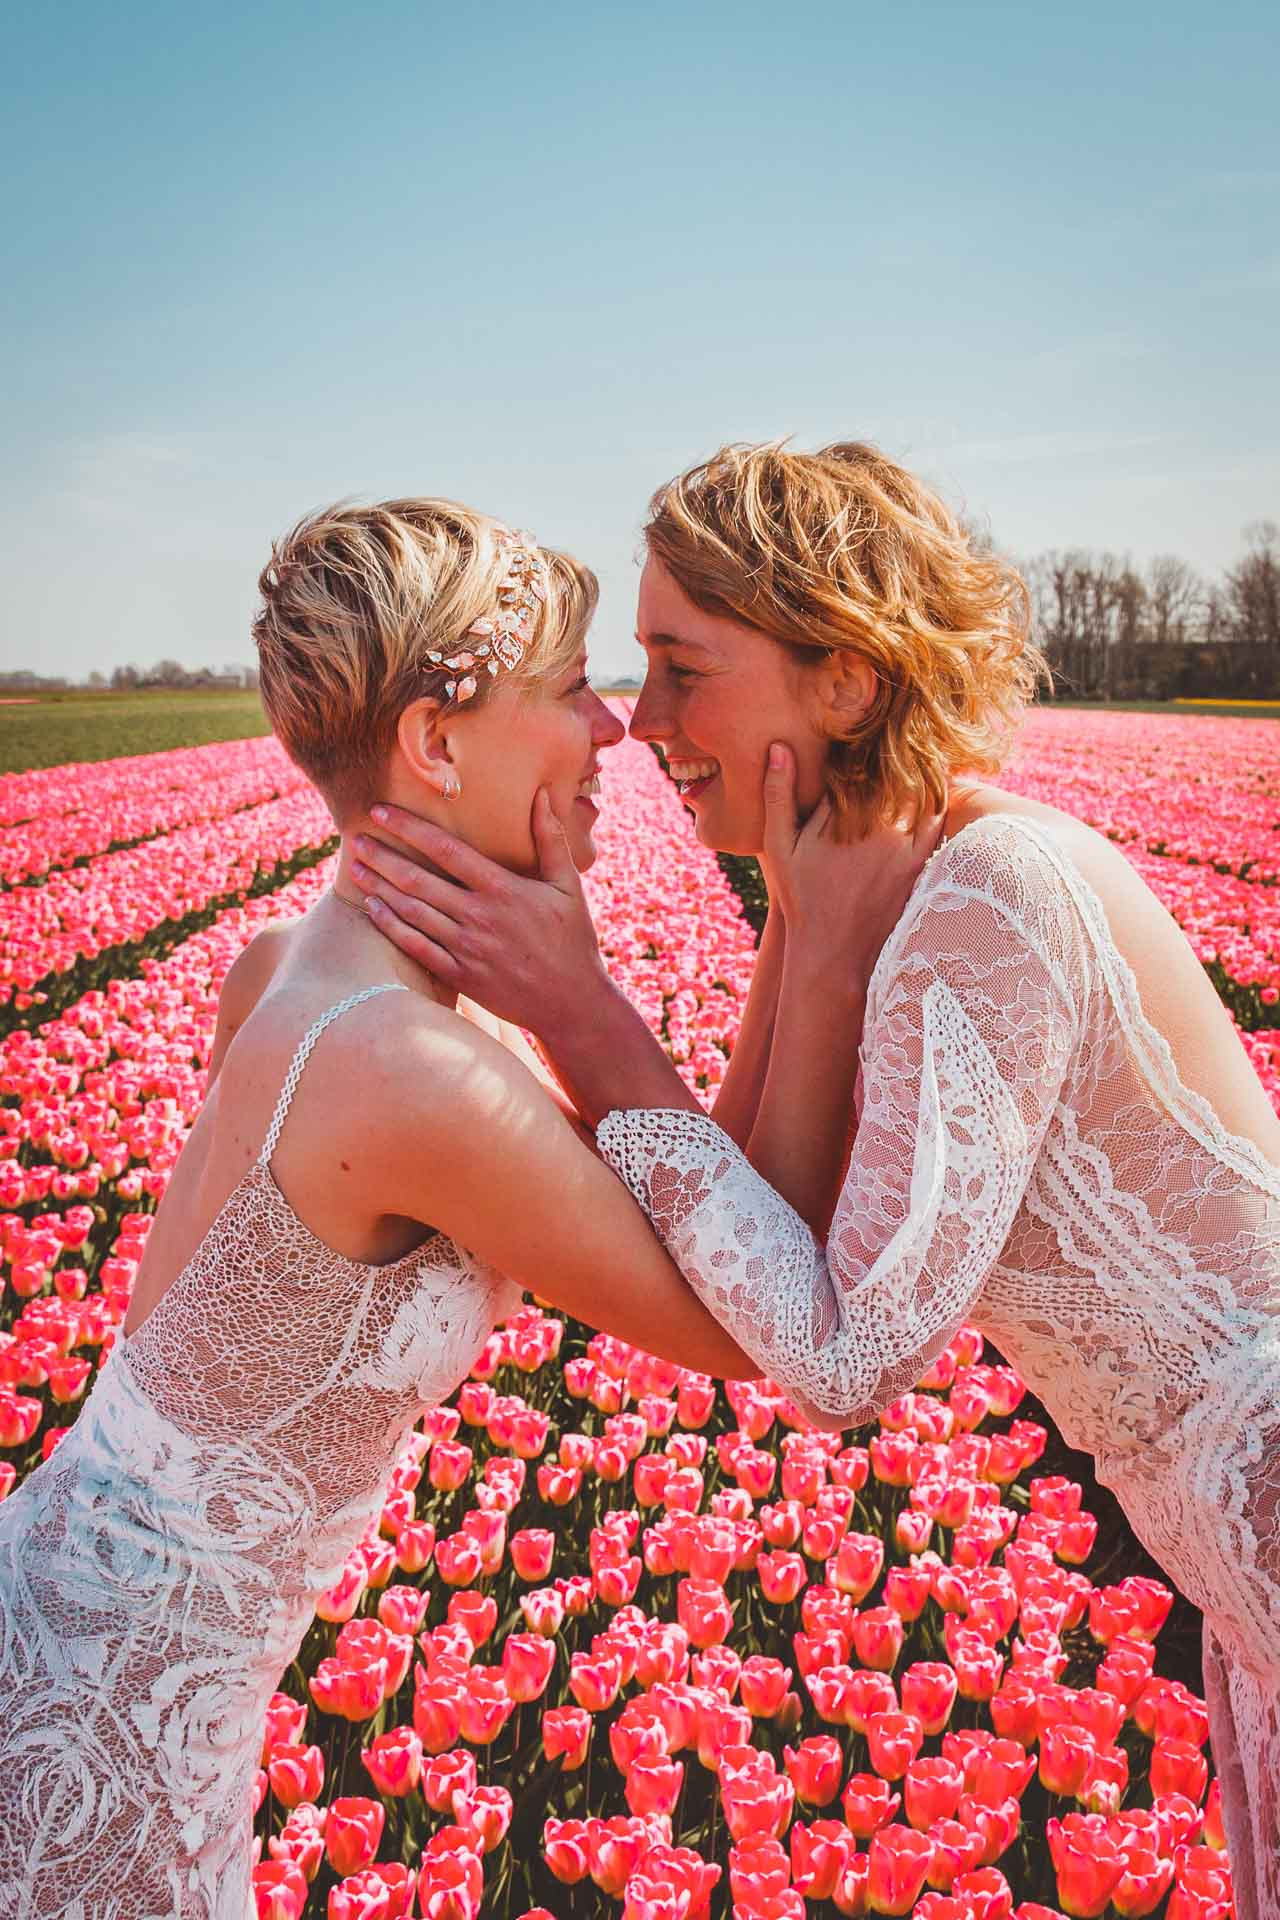 Tulip Fields, Tulpenvelden, Lesbian Wedding, kiss, Netherlands